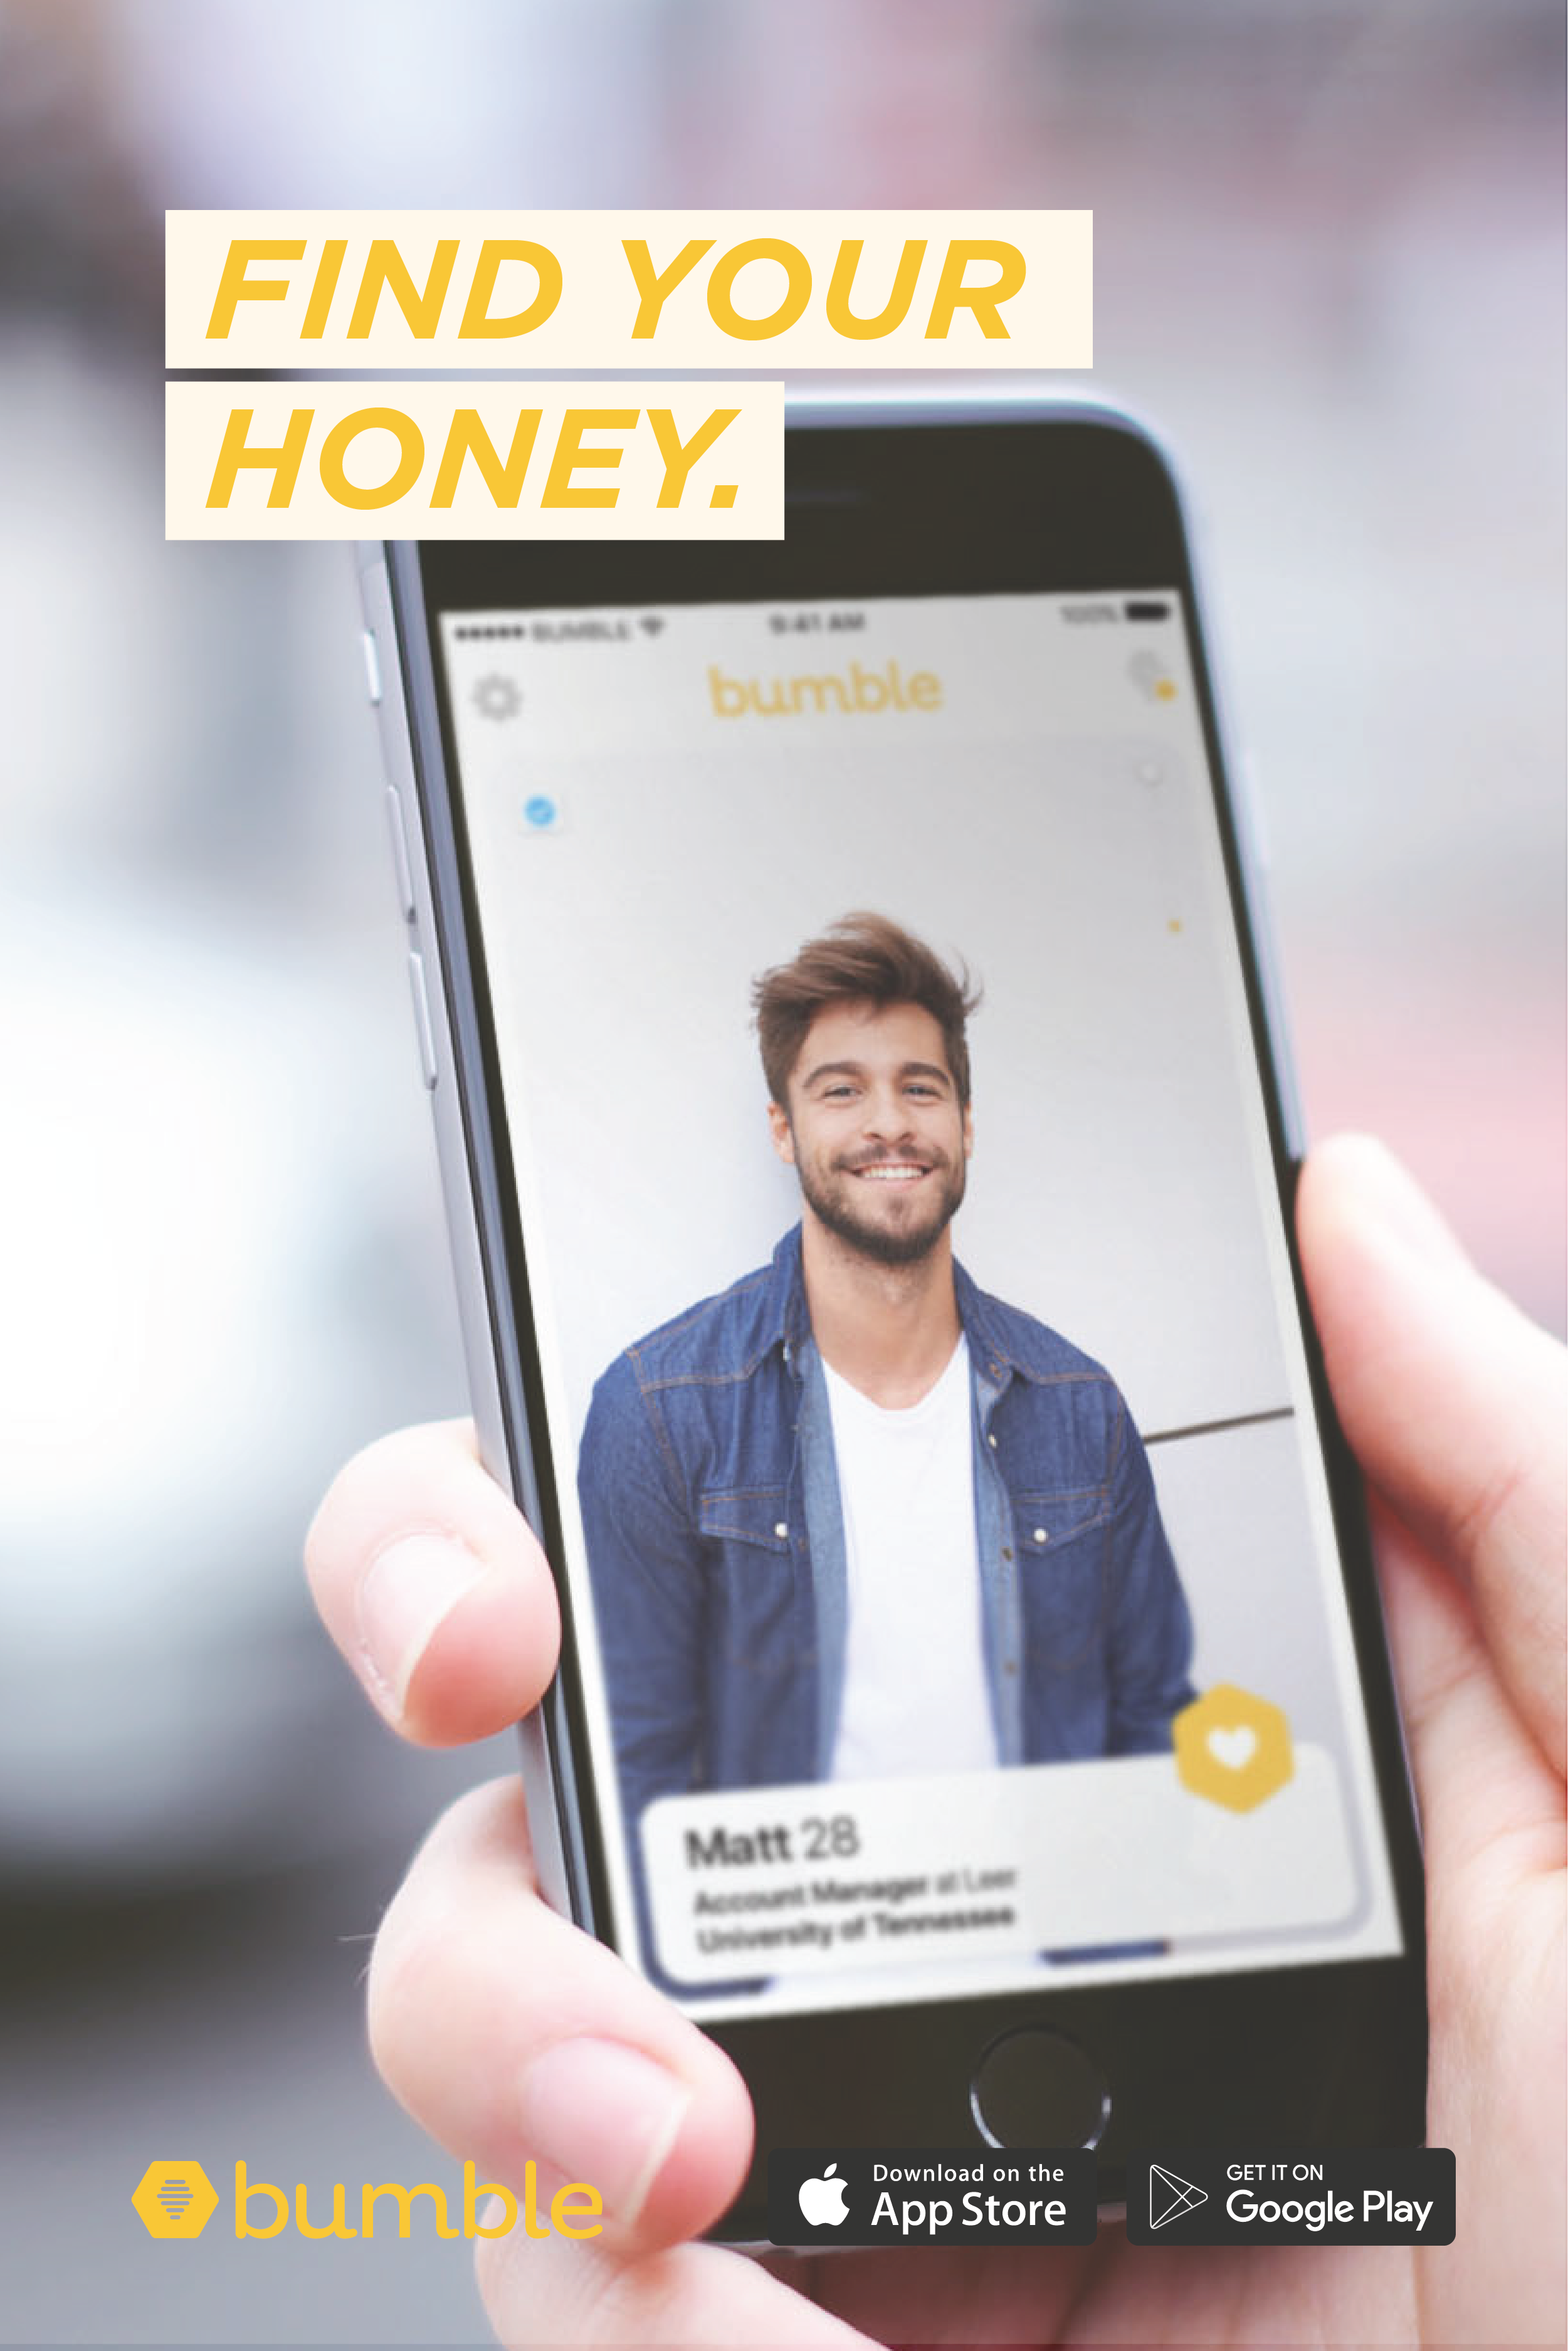 Pin by Bumble on BUMBLE PINS (With images) Meeting new